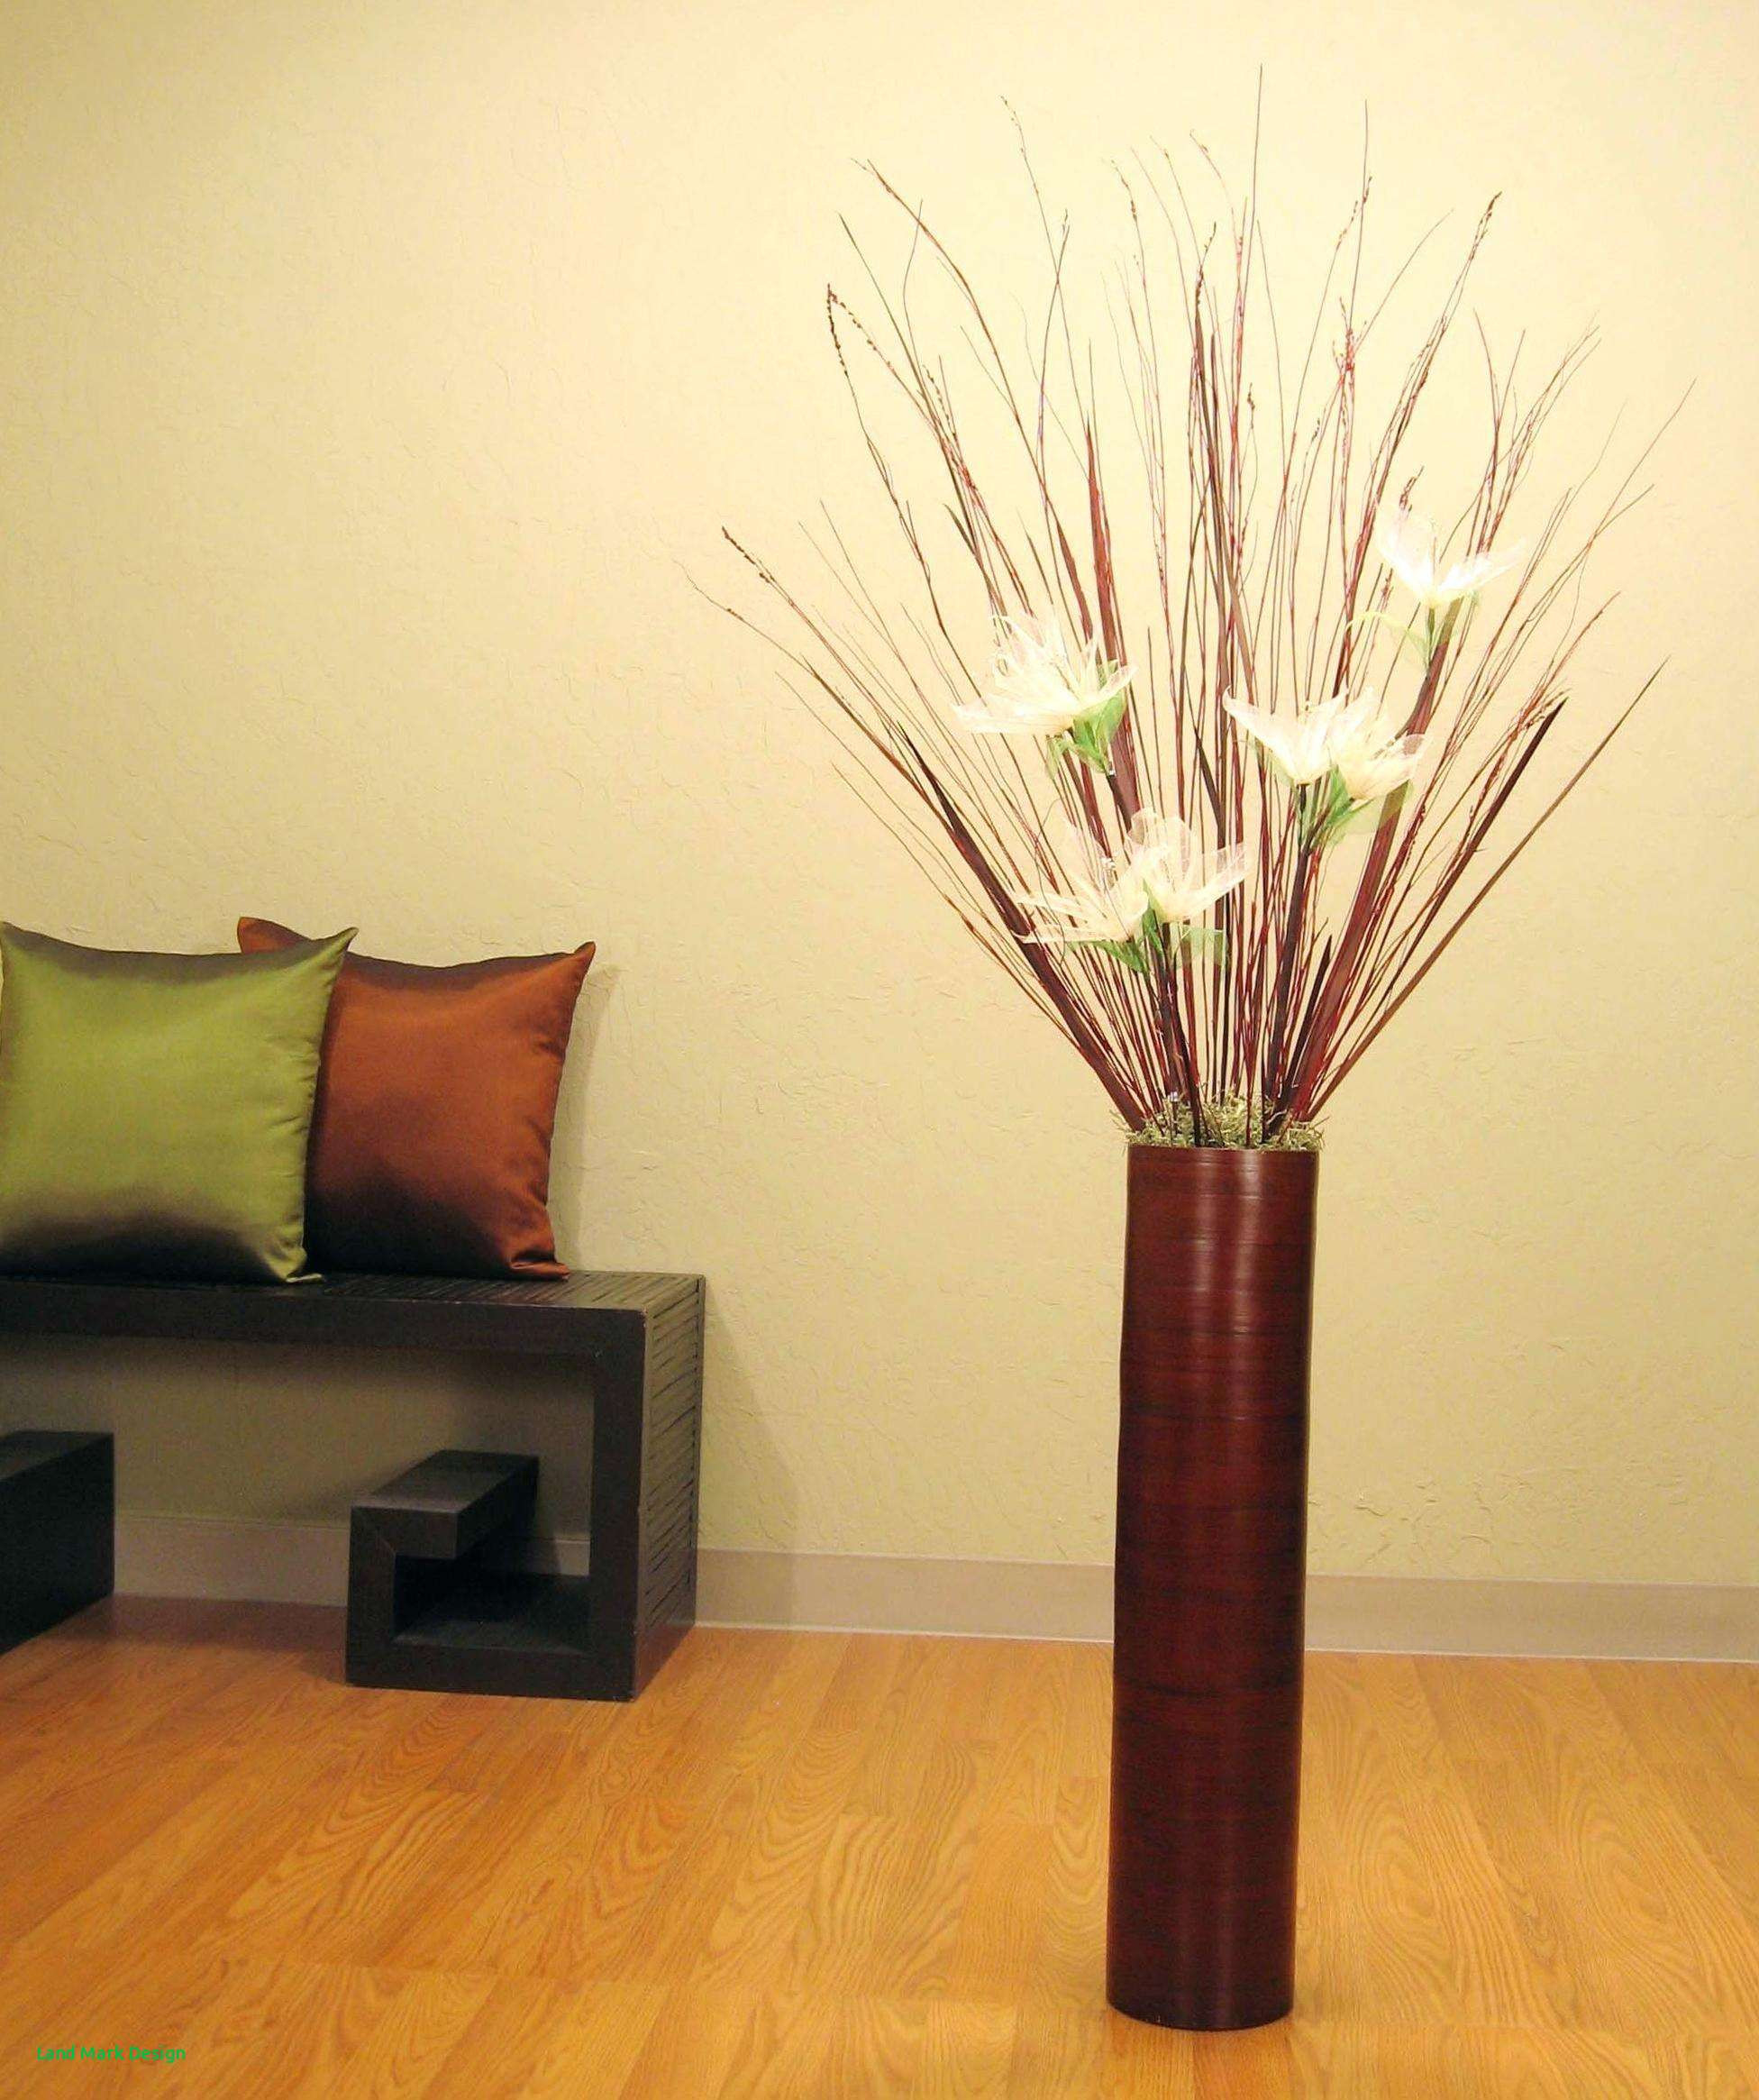 Bamboo Floor Vase Of About Bamboo Flooring Home Decor Home Design In Full Size Of Living Room Bamboo Vase Awesome Cheap Floor Standing Vases Image Collections Vases Large